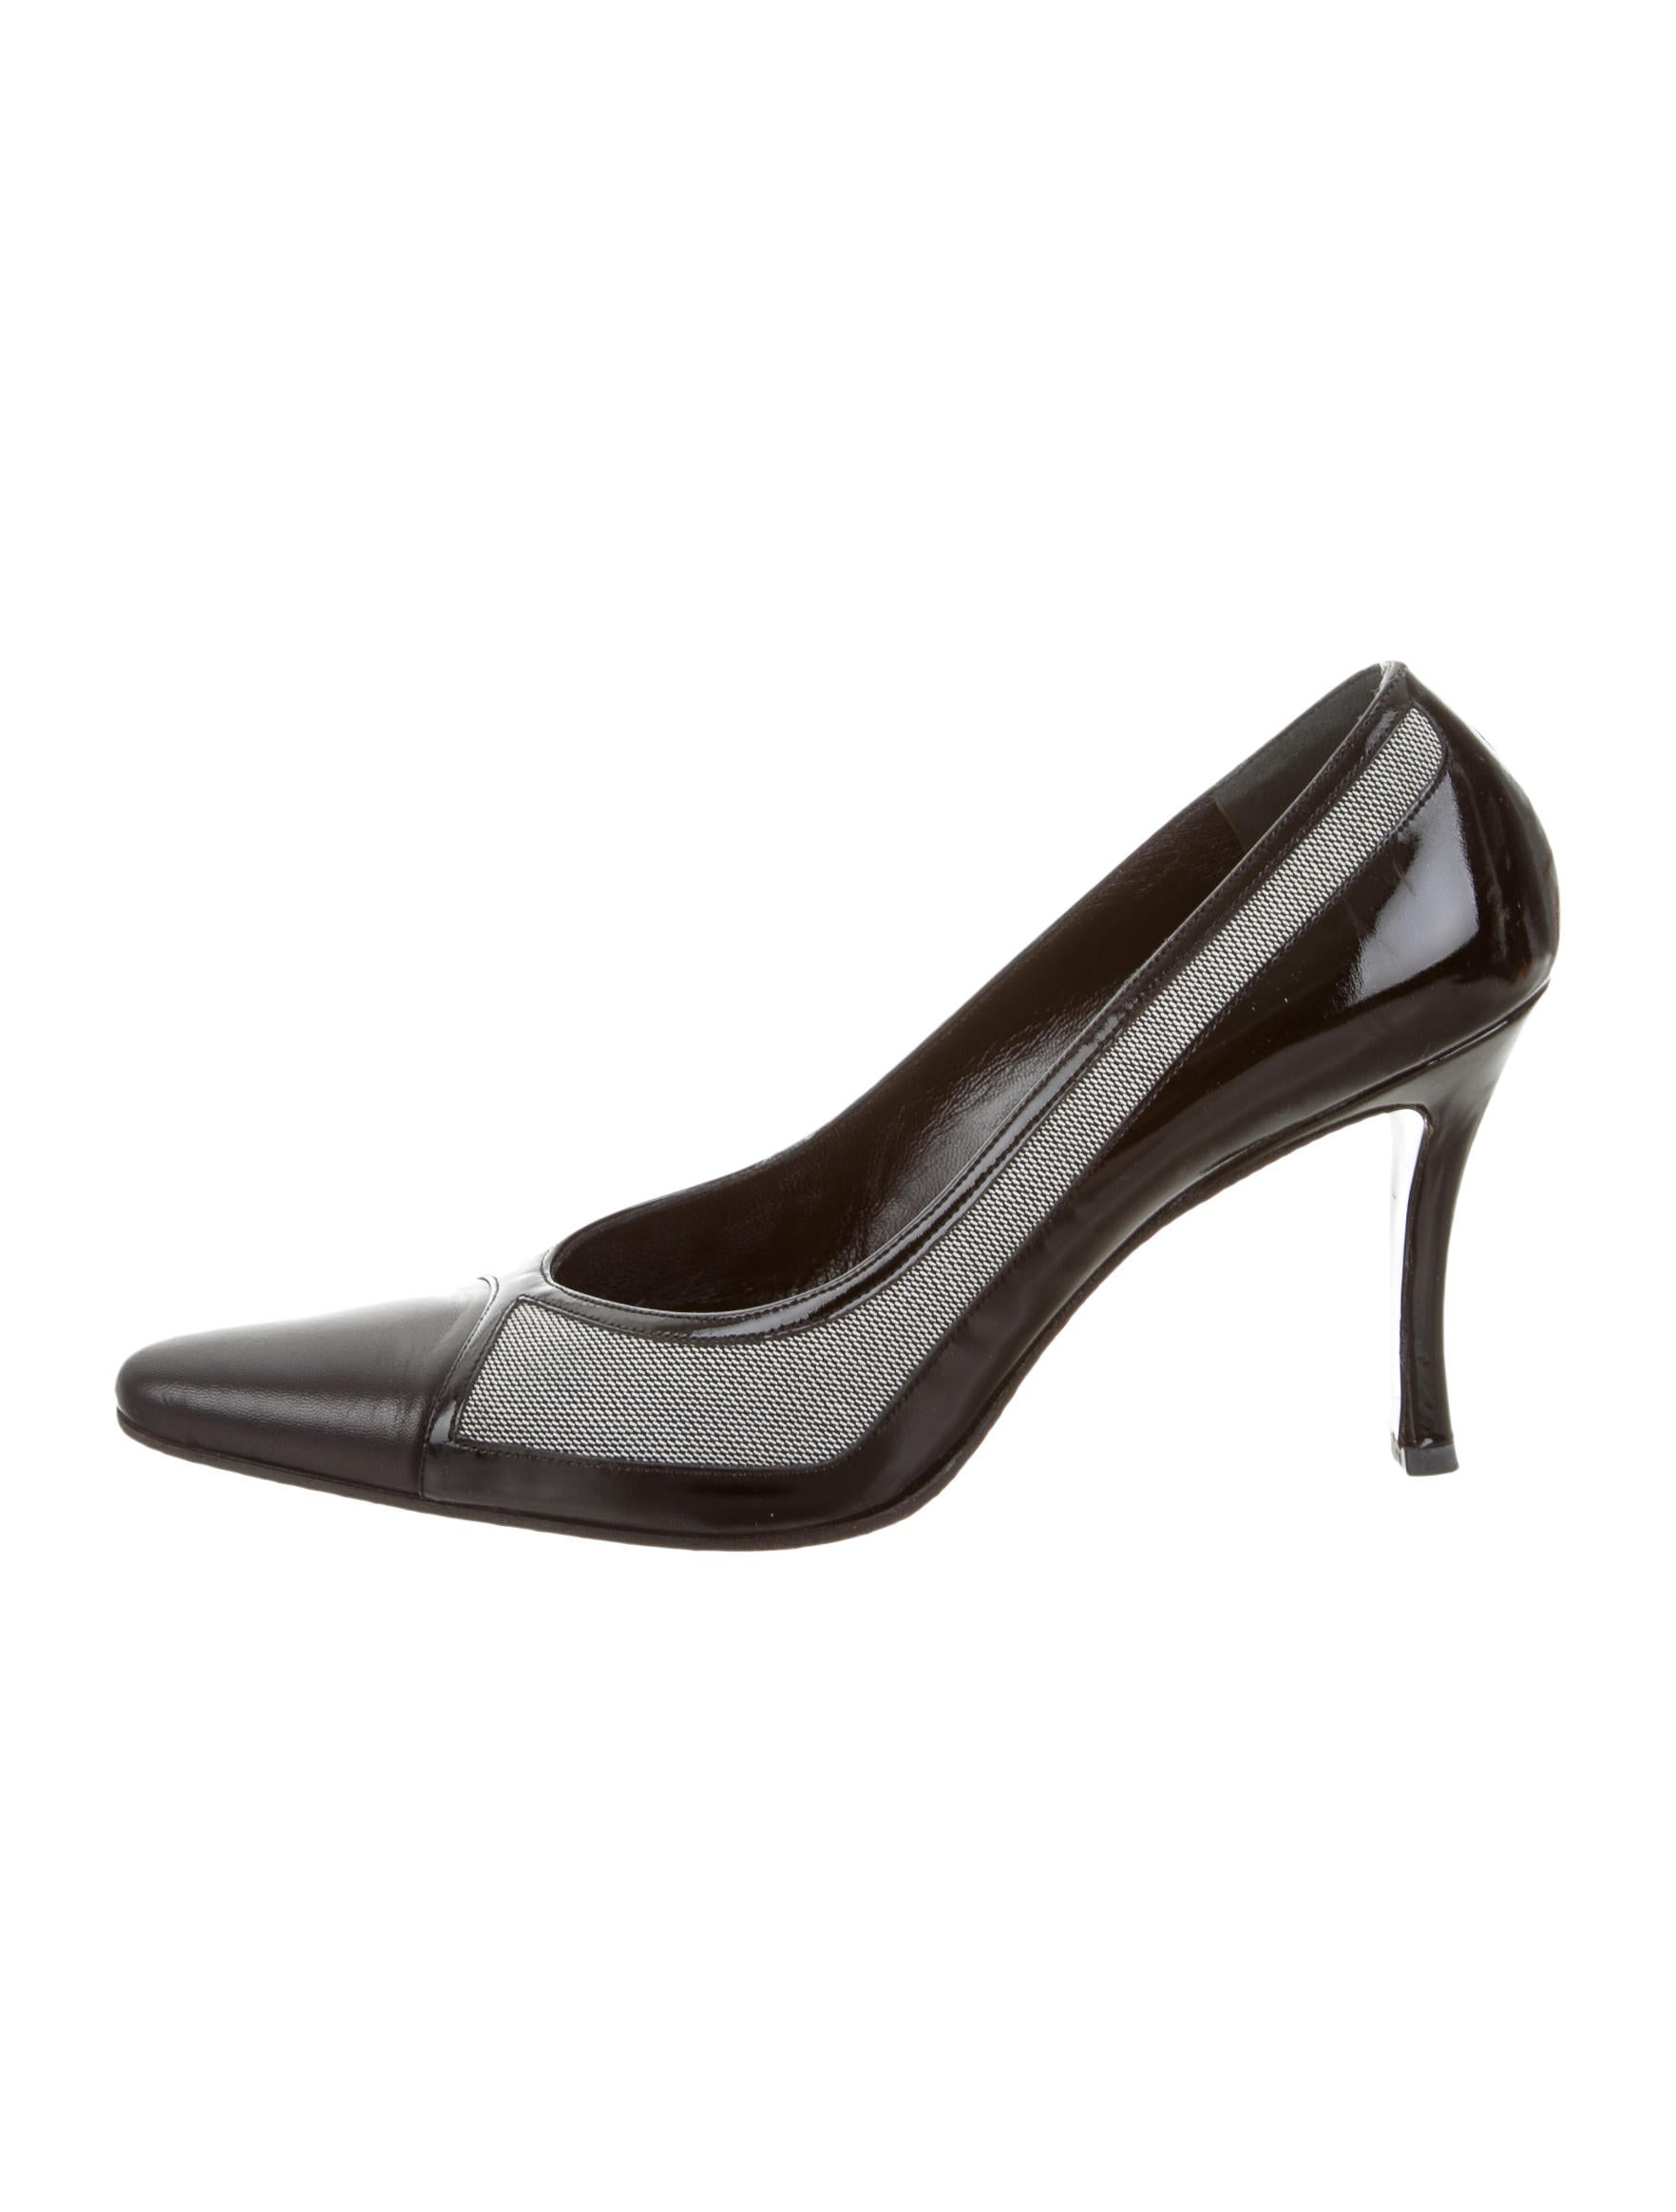 gucci leather pointed toe pumps shoes guc105797 the